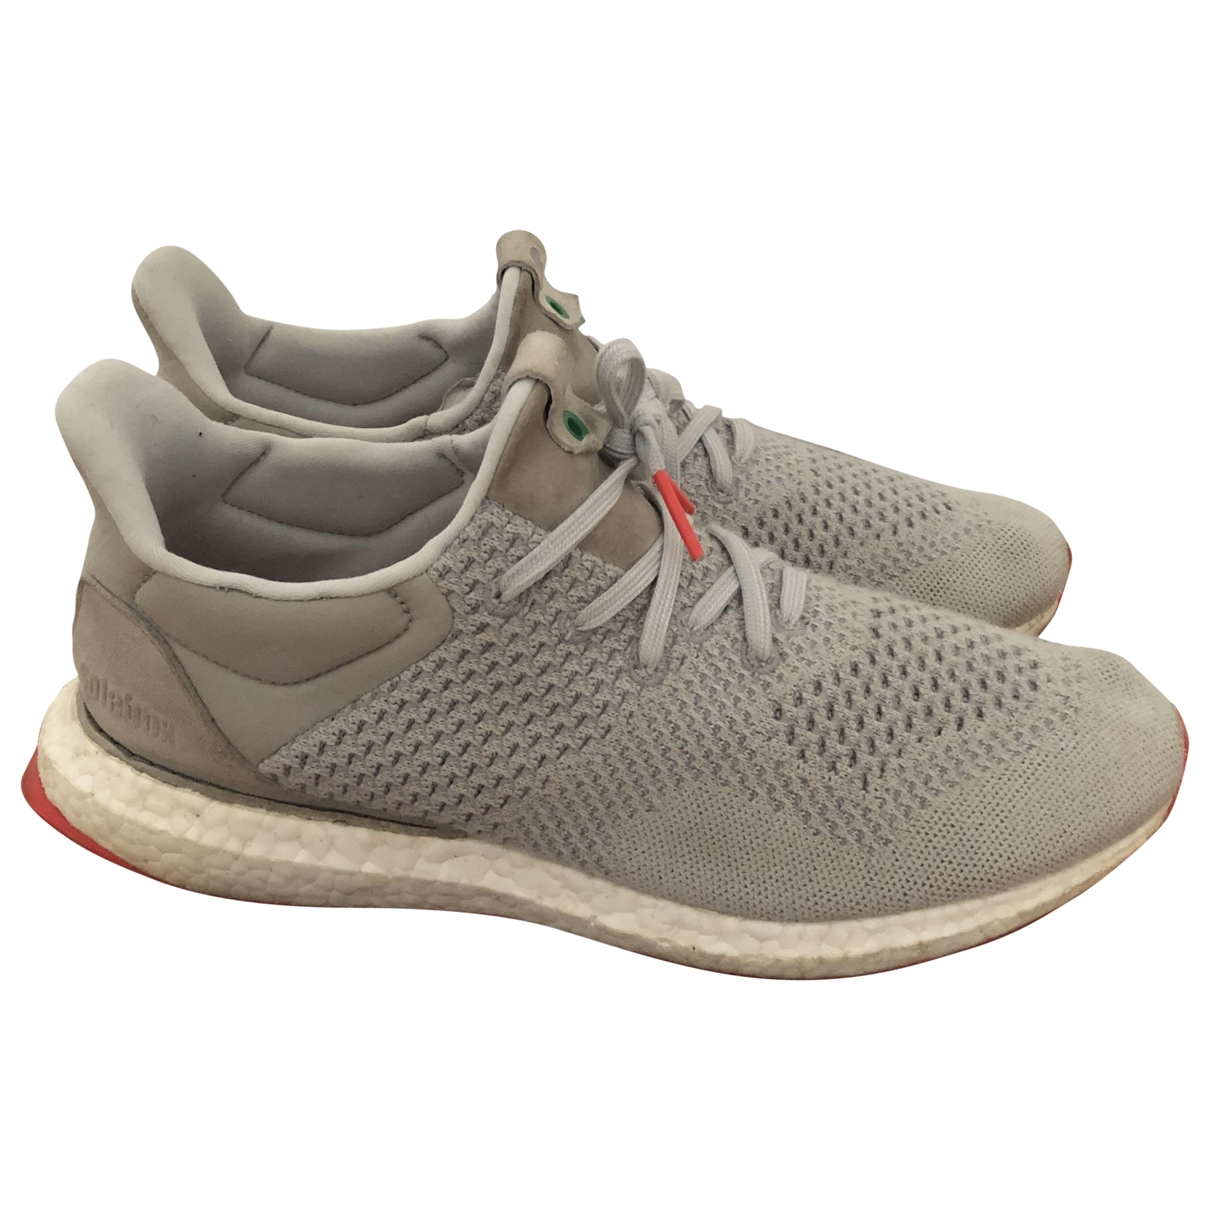 Adidas Ultraboost Grey Cloth Trainers for Men 45 EU